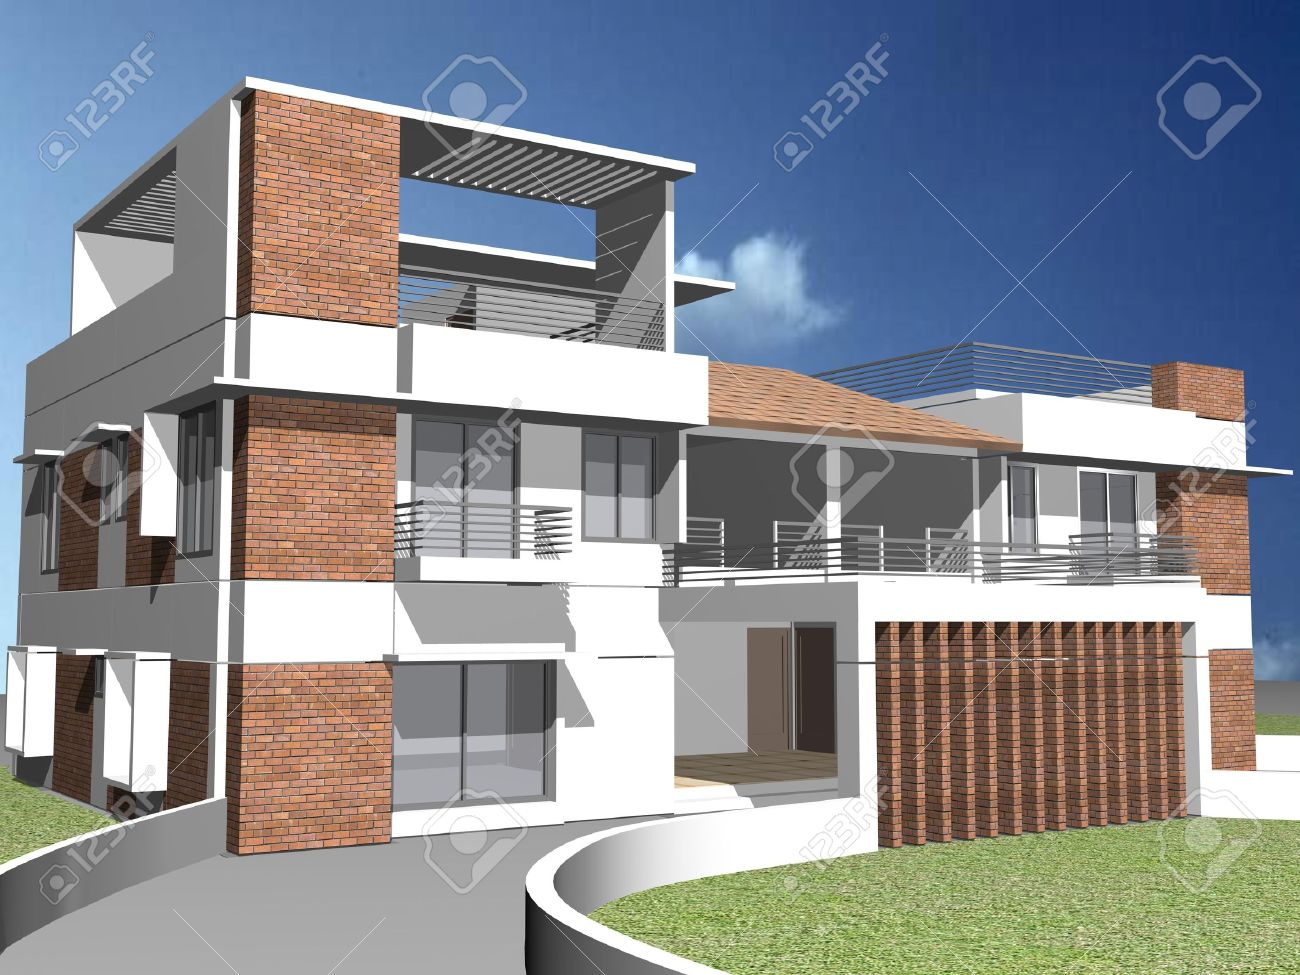 duplex home stock photos royalty free duplex home images and pictures duplex home modern duplex house stock photo